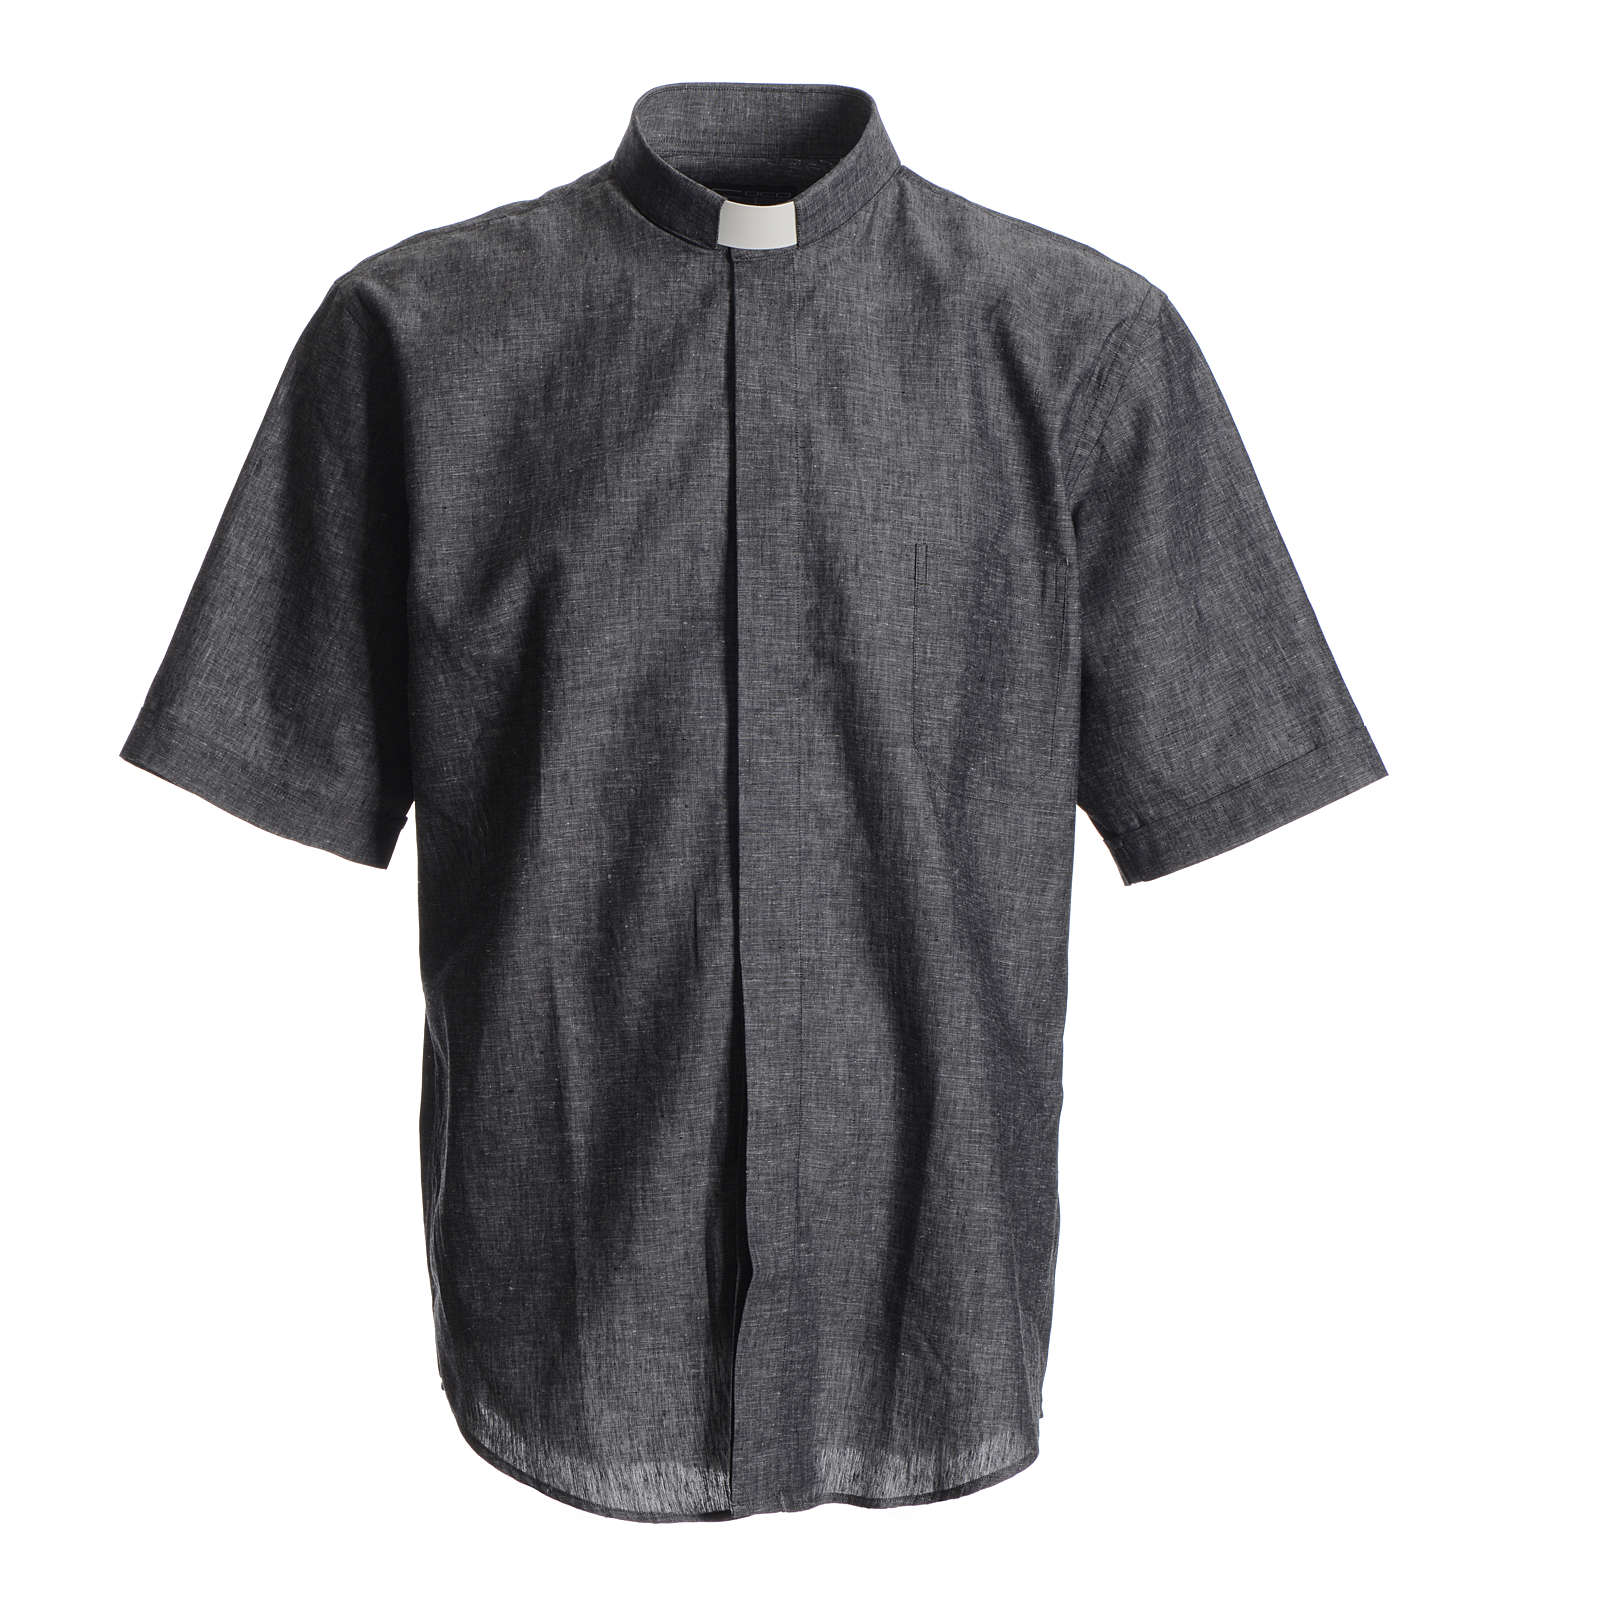 Clerical shirt in grey linen and cotton 4